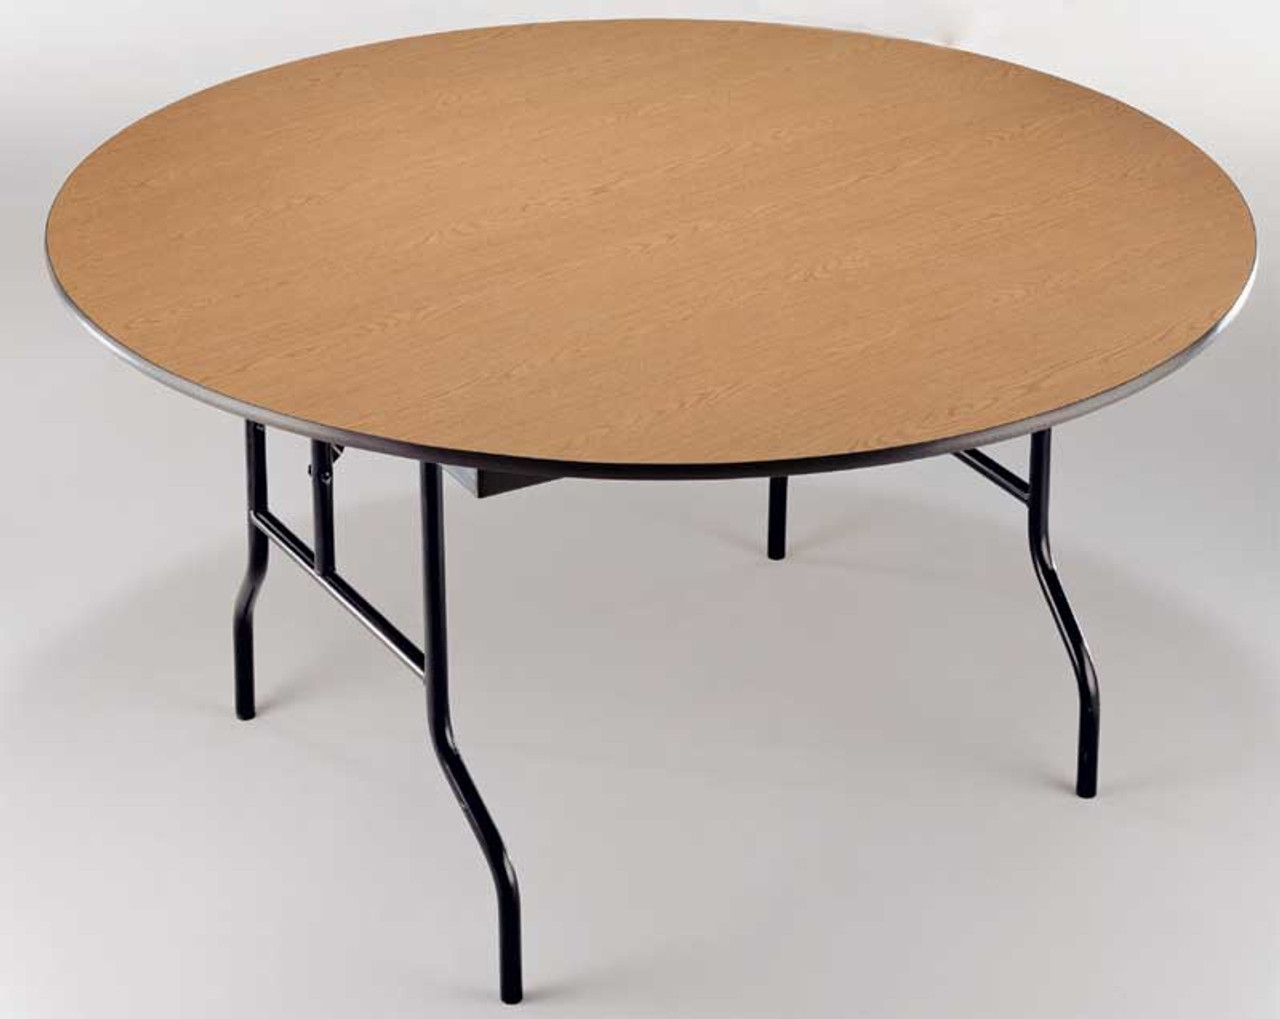 Midwest R42EF Plywood Core 42 Inch Round Folding Table ...